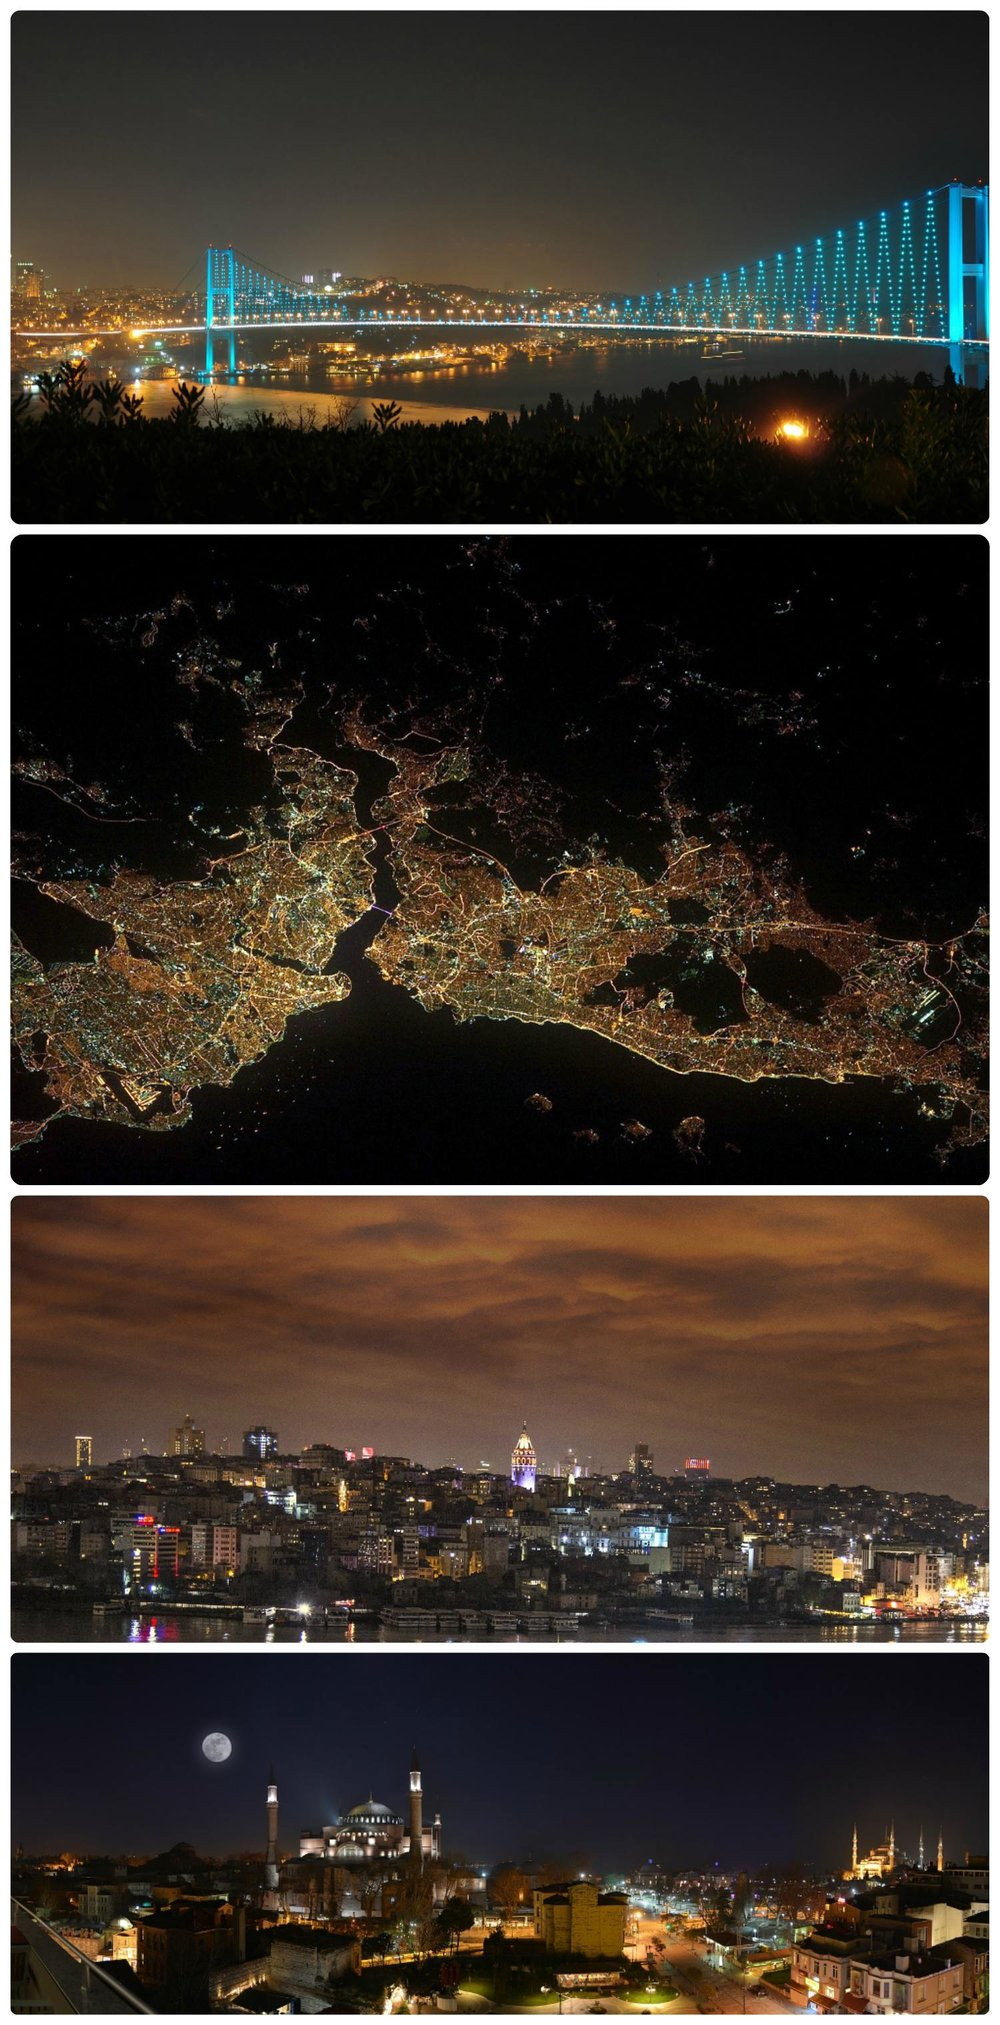 We arrived late and were treated to the beauty of Istanbul at night.